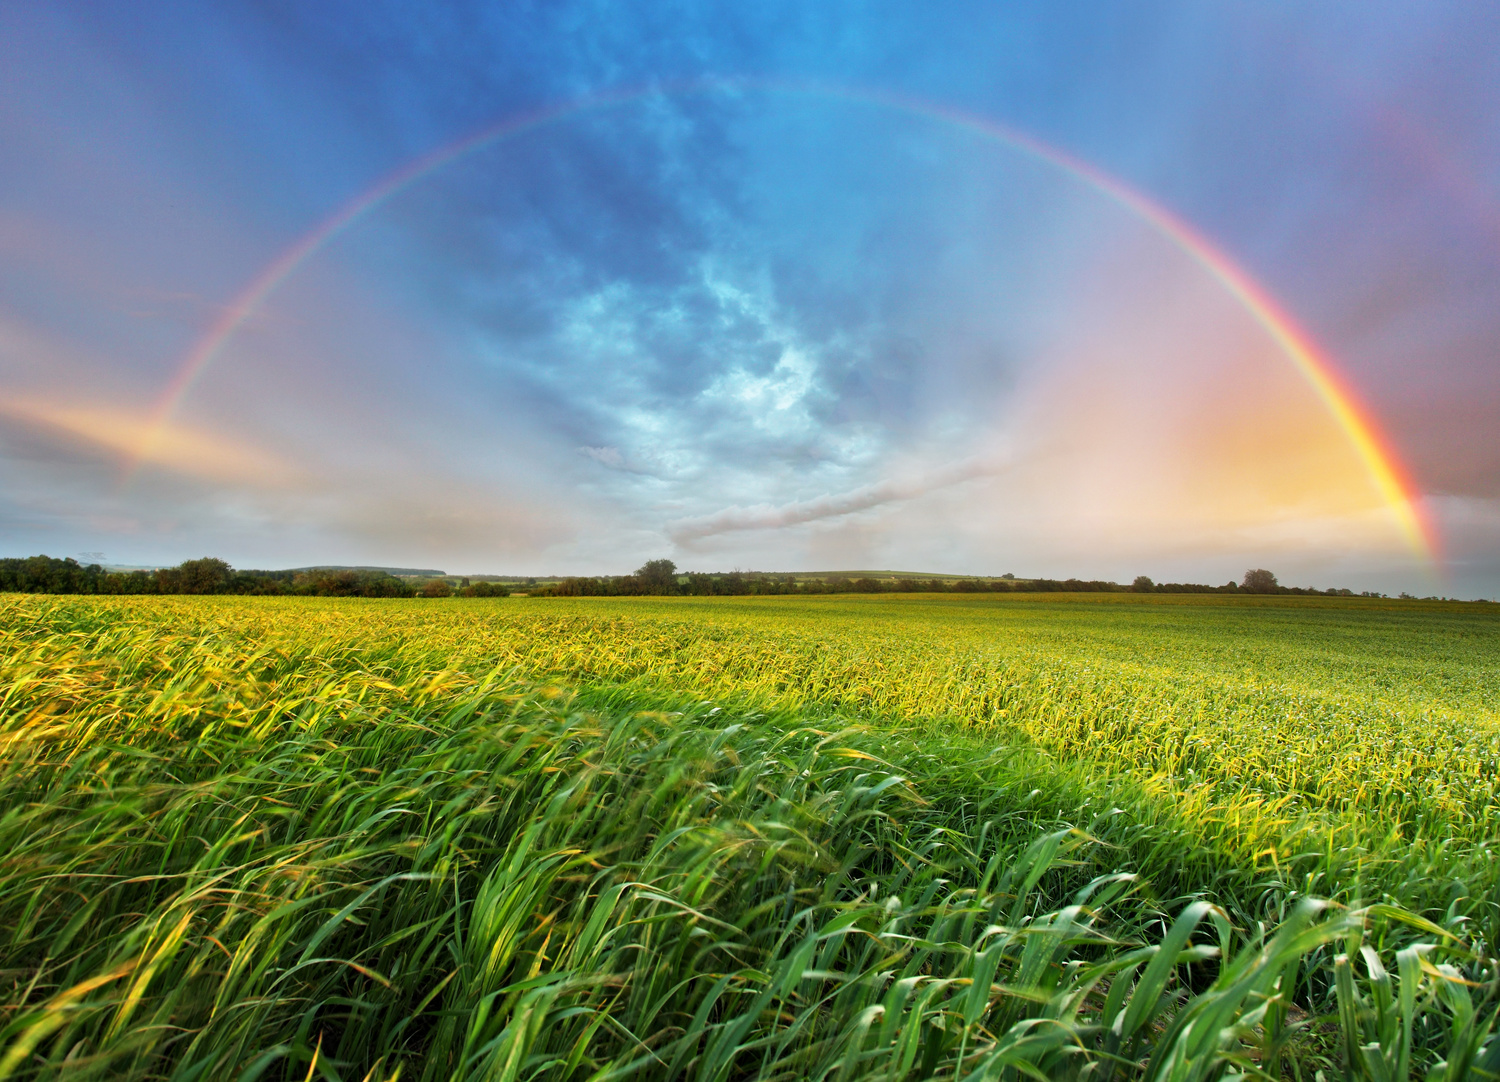 A person standing next to you is standing in a slightly different spot and sees the rainbow in a slightly different because the person next to you sees different raindrops.